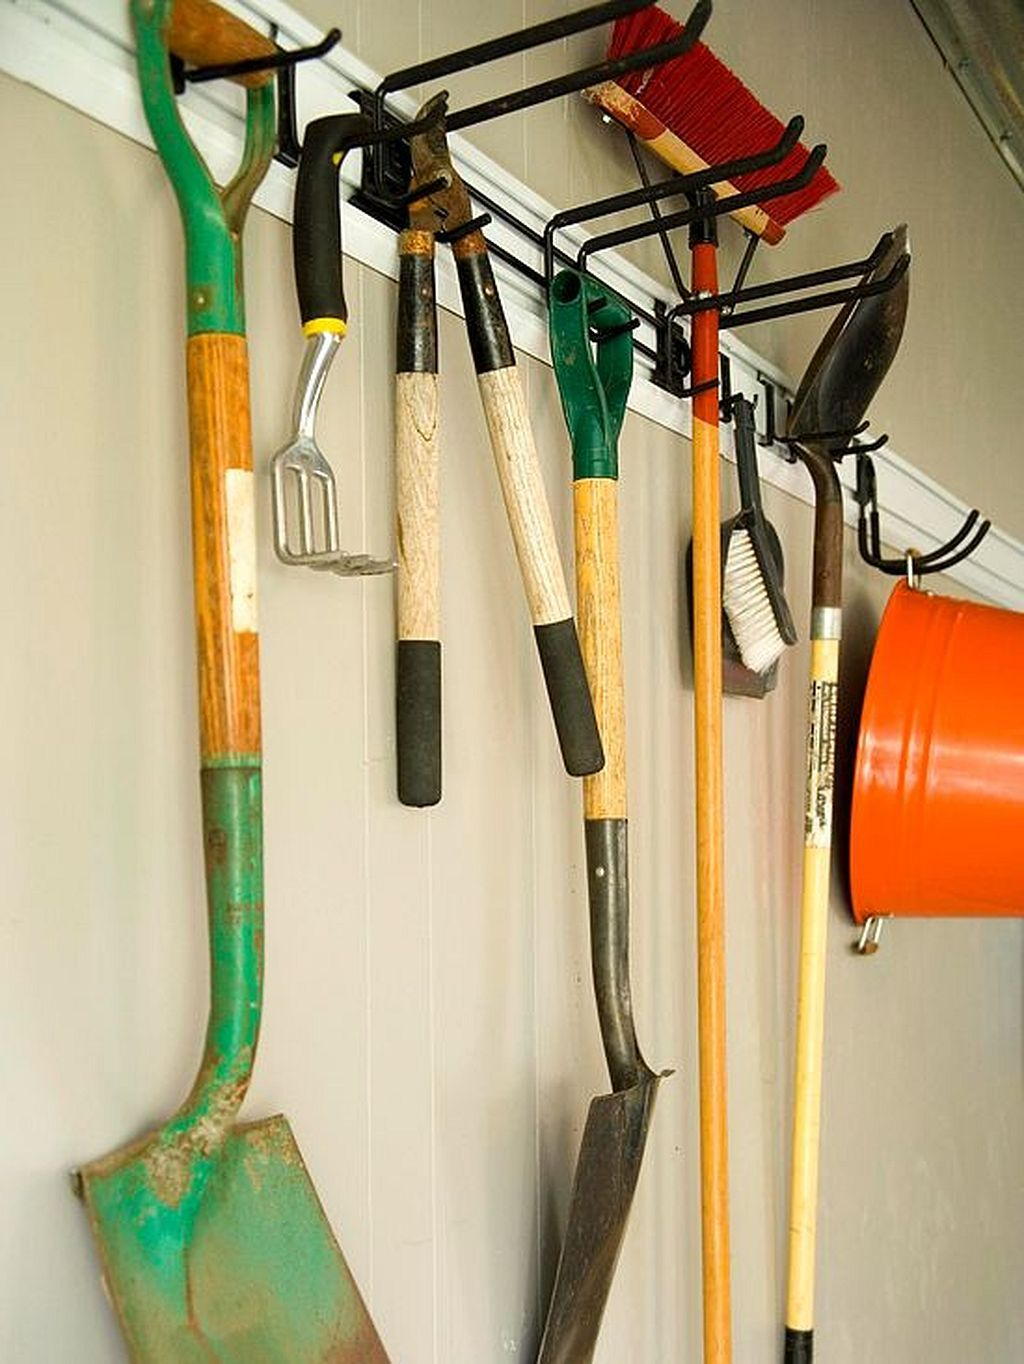 cool 30 garden tool organization ideas https gardenmagz on cool diy garage organization ideas 7 measure guide on garage organization id=68216